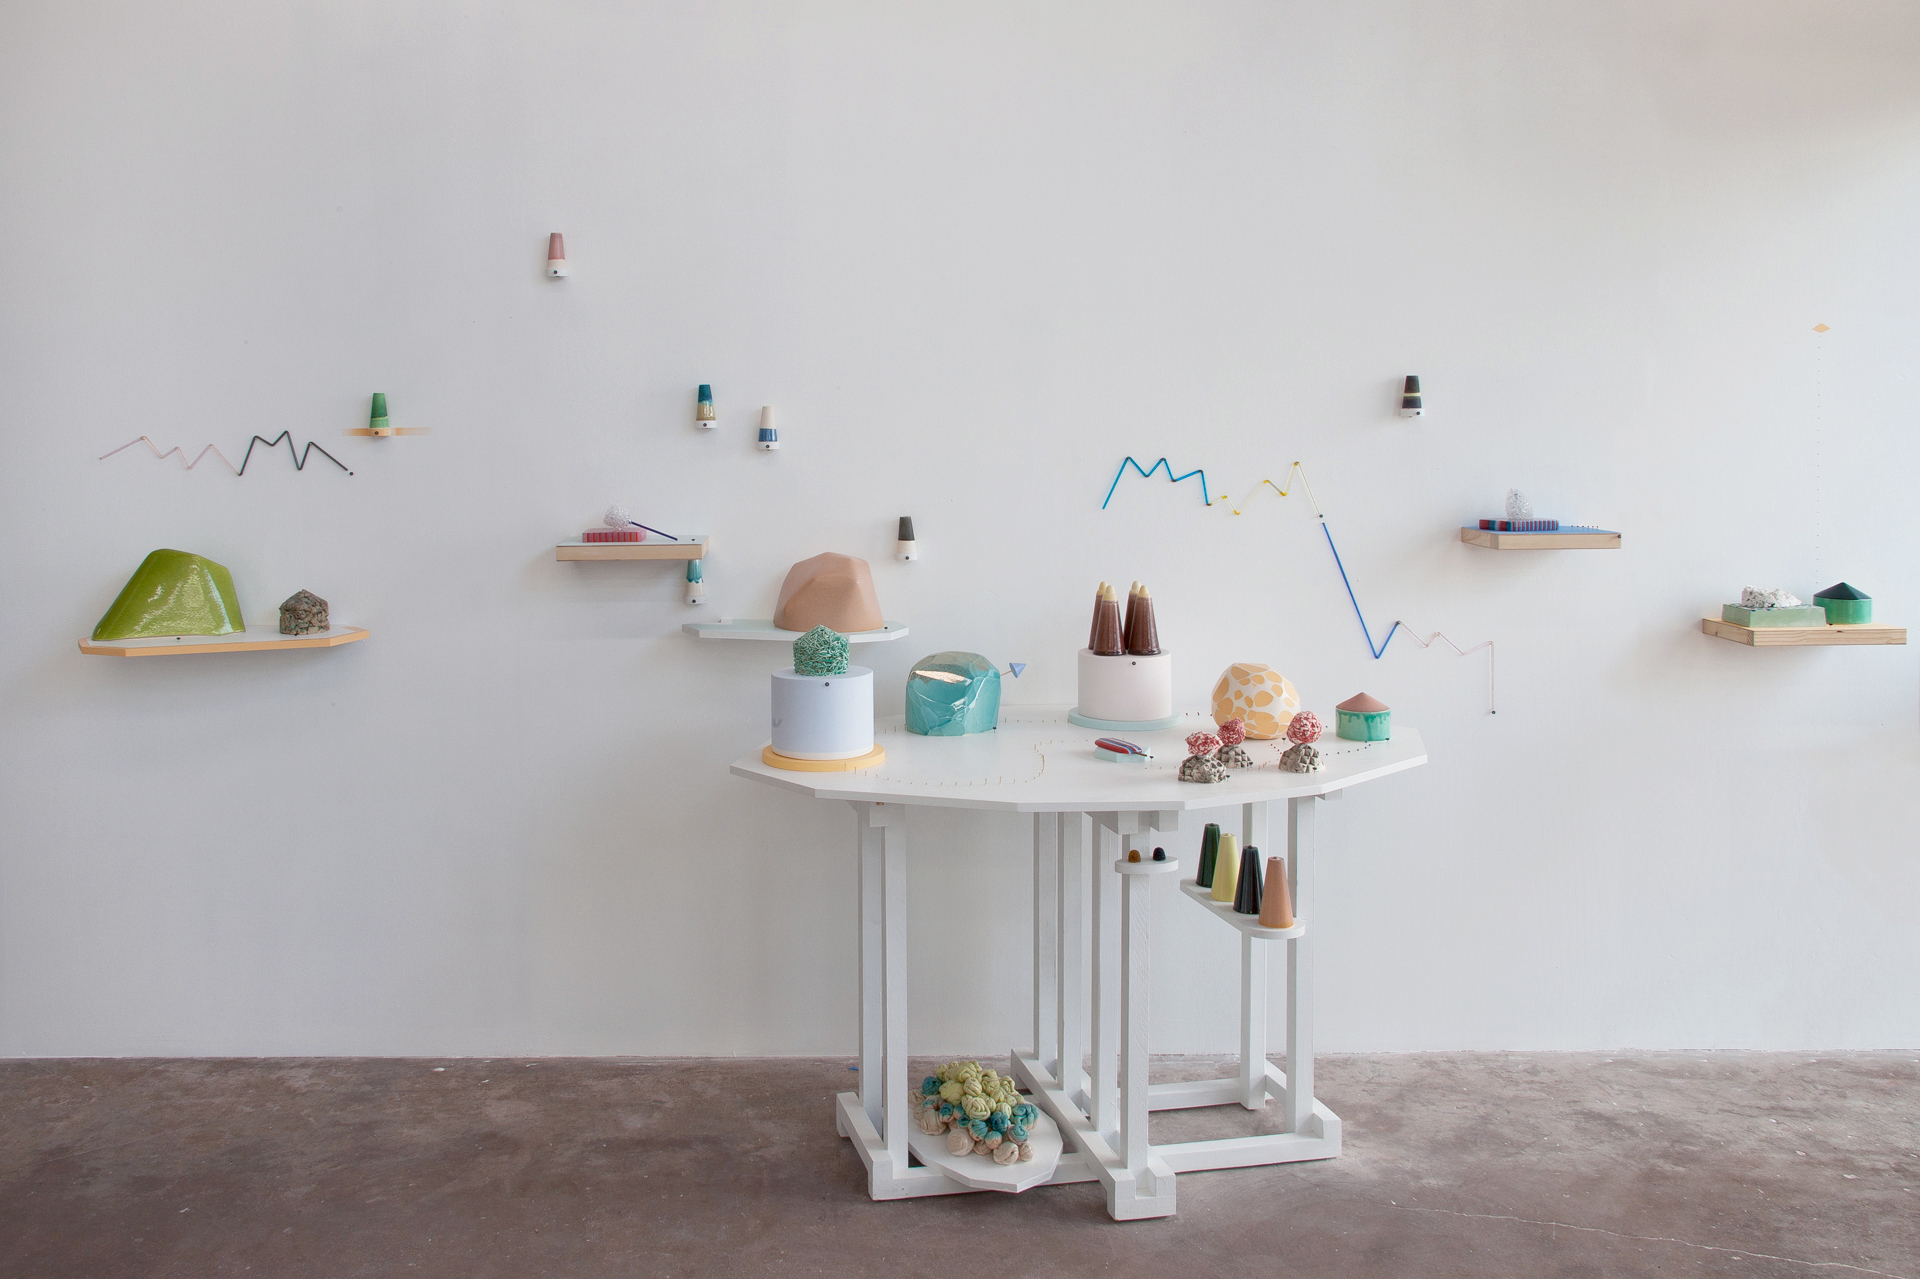 Sweetsscape  Porcelain, glass, plaster, stain, wood, MDF, paint, epoxy, pins 2011